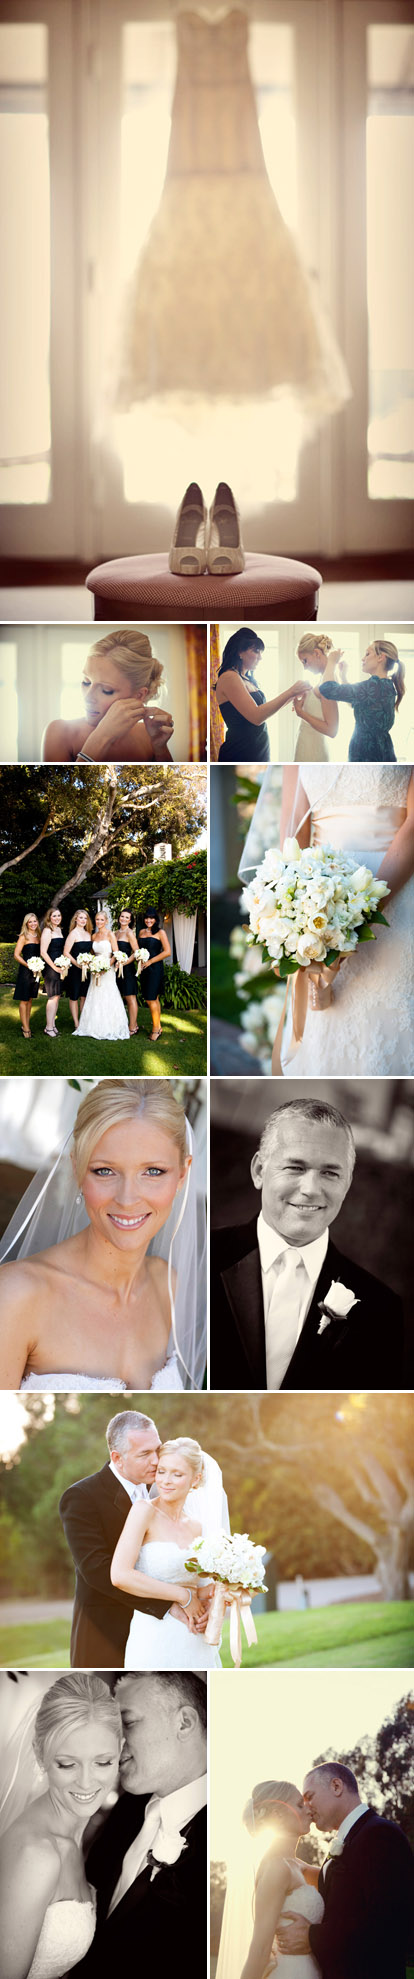 Romantic fall Santa Barbara, California real wedding at The Valley Club of Montecito, photographed by Boutwell Studio